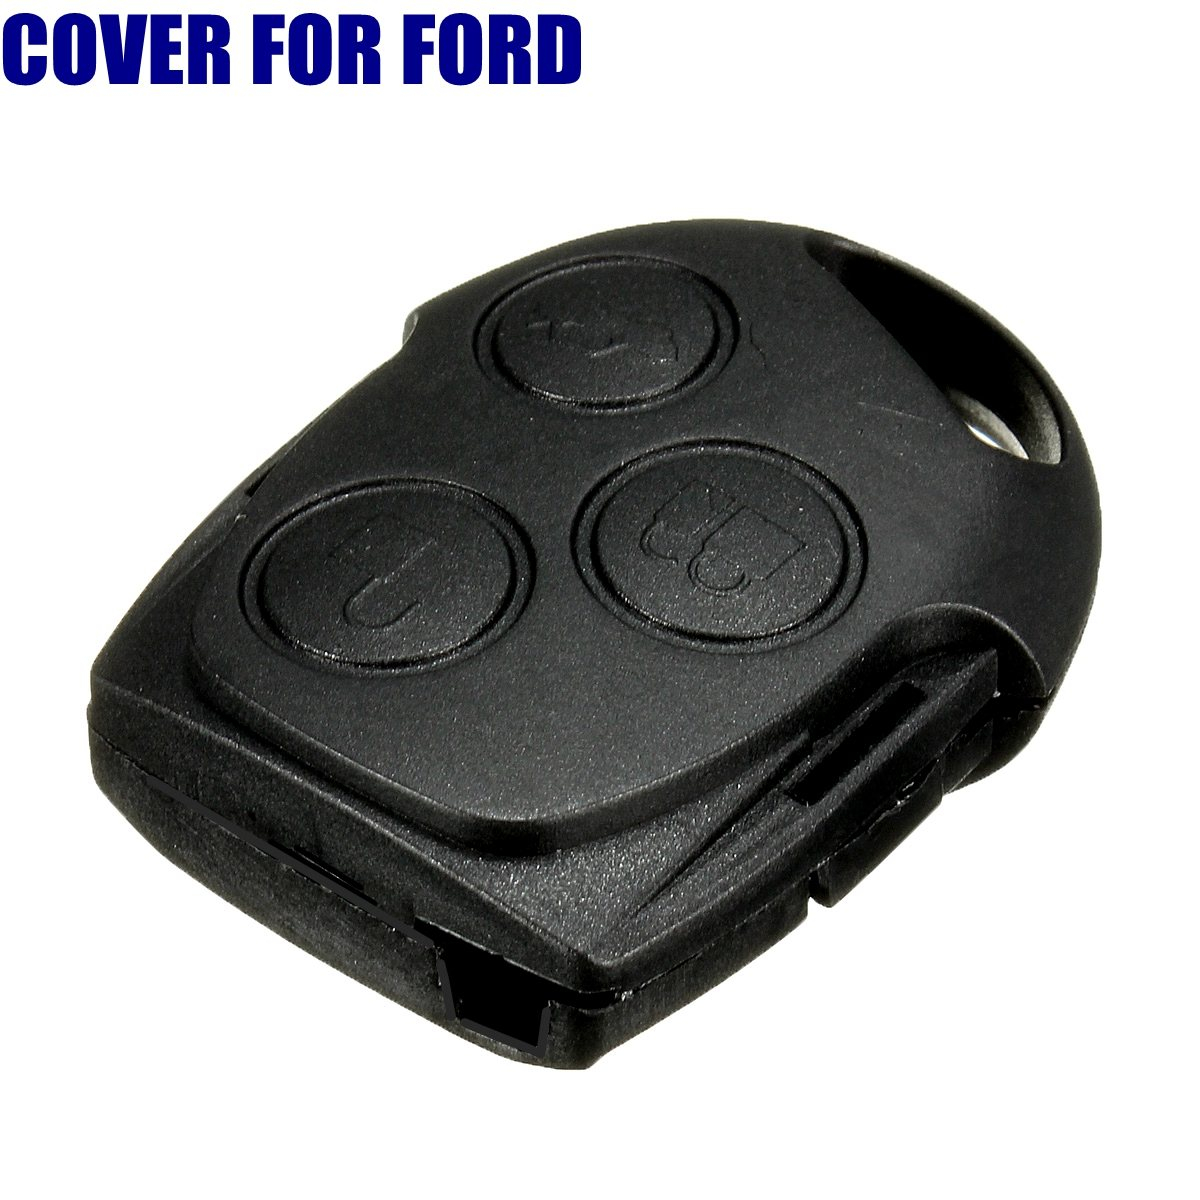 3 Buttons Black Car Remote Key FOB Case For FORD For Focus/Mondeo/Fiesta/C-max